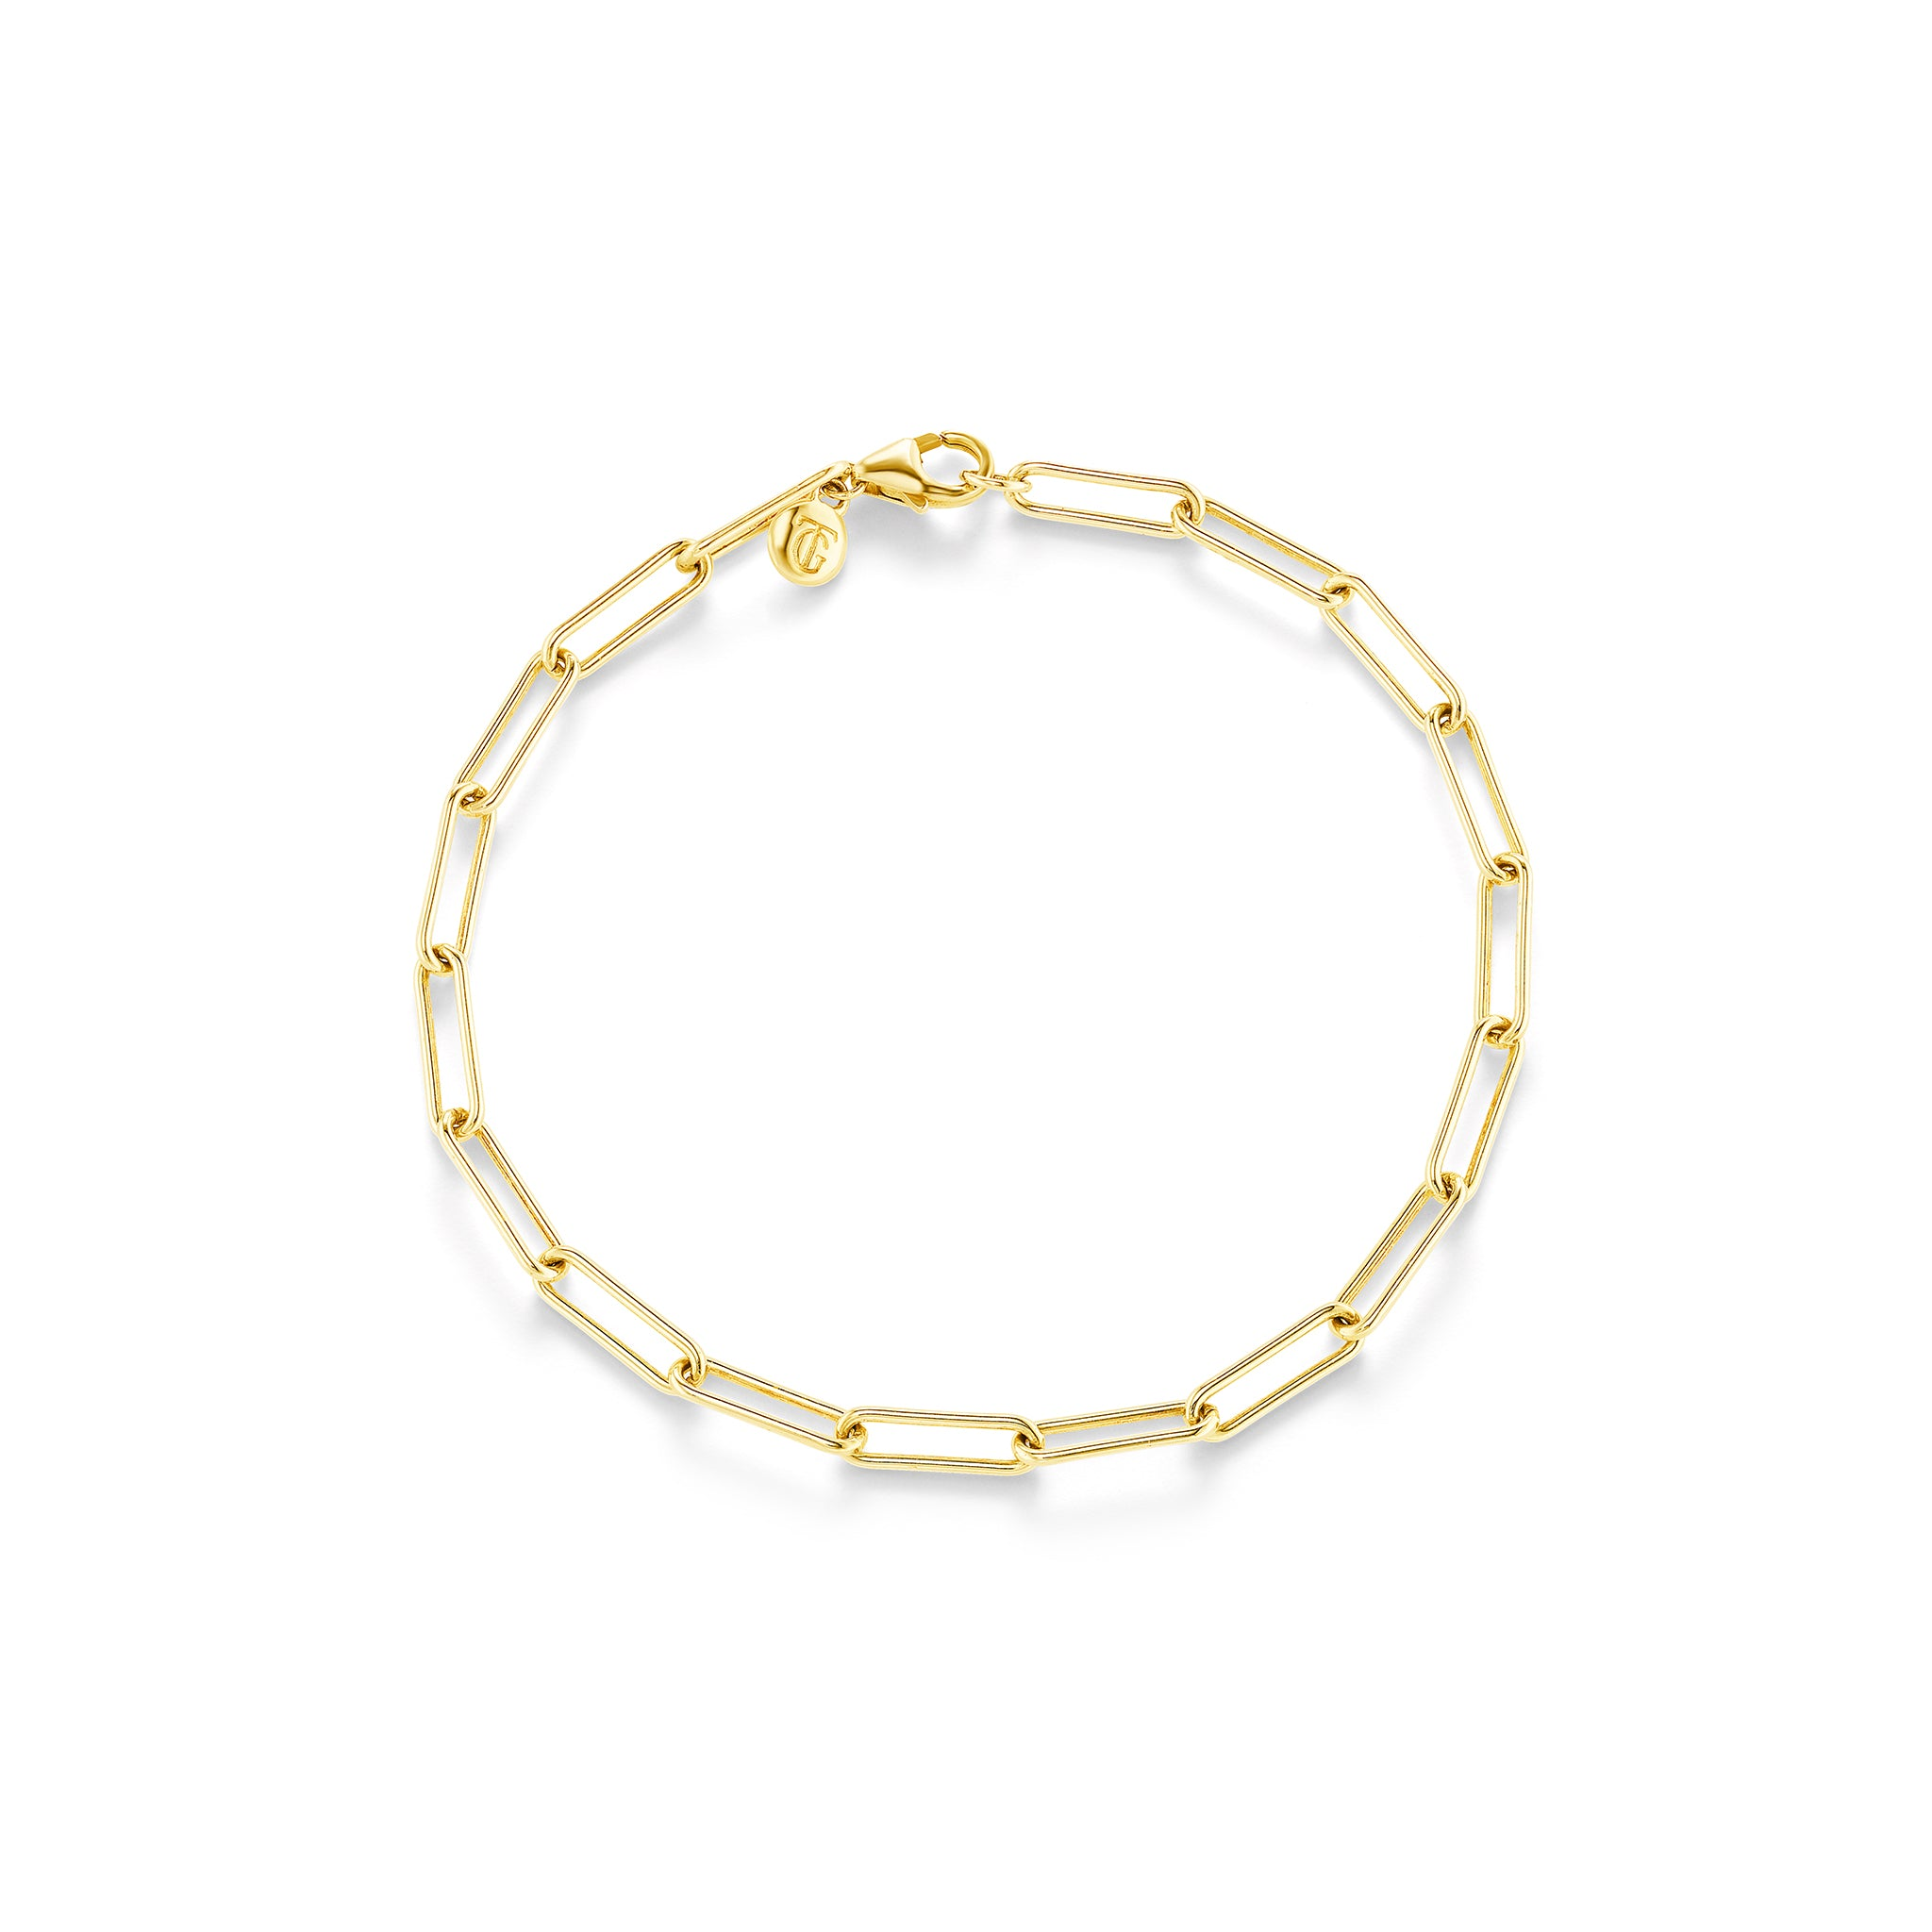 The Gold Soho Bracelet